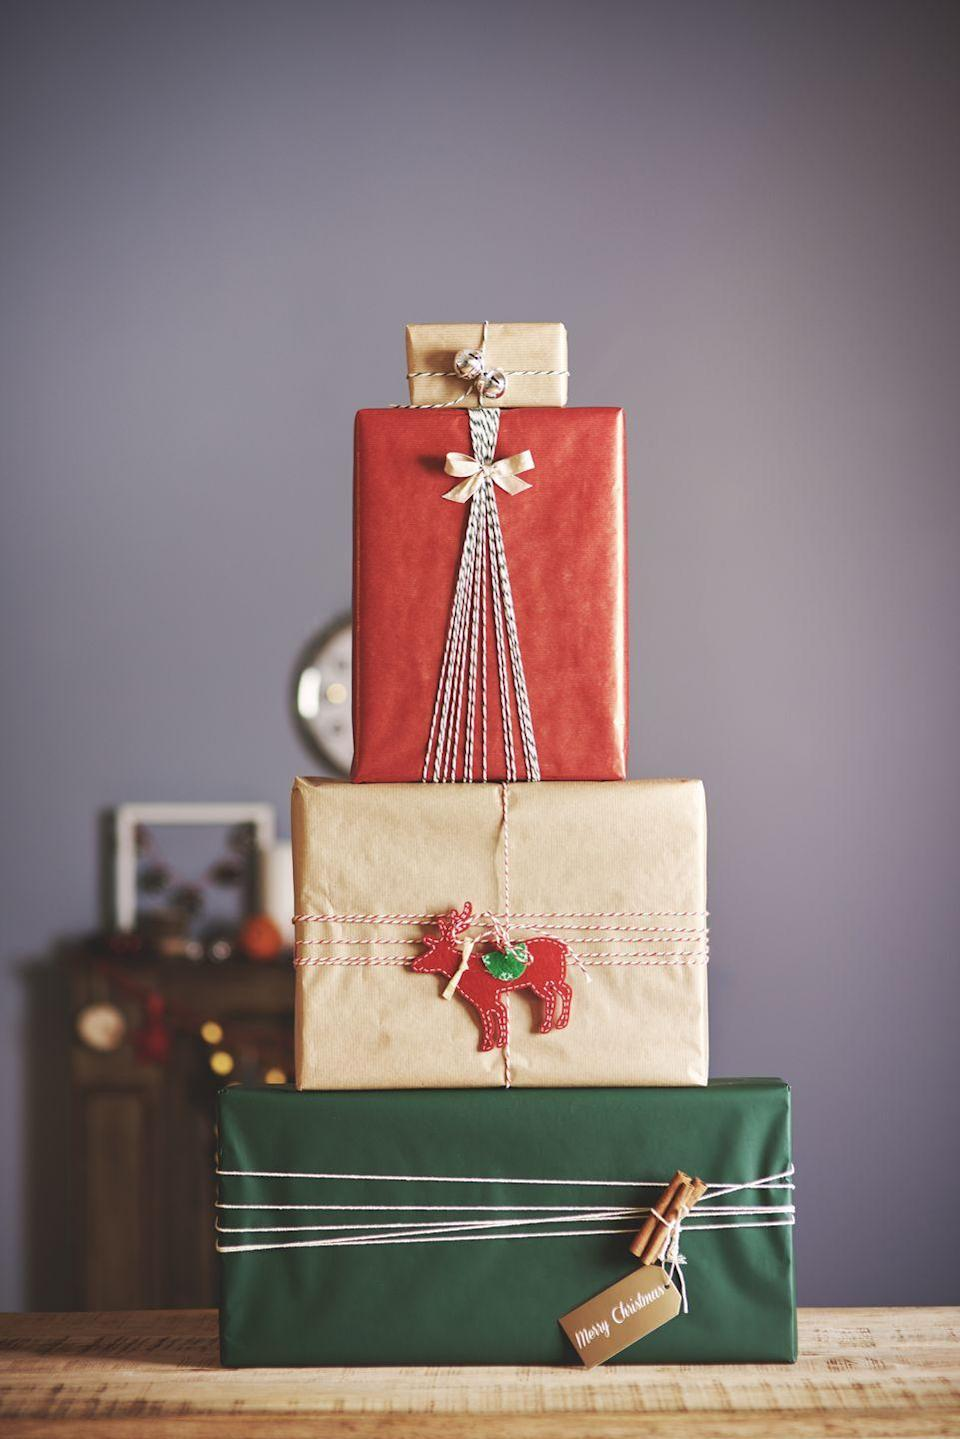 """<p>White elephant exchanges always lead to an evening filled with laughter. Be sure to invite a group of at least six or more people and set a cap for how much each present should cost, so no one is going over their budget. Need some affordable gift ideas? We have just what you need with <a href=""""https://www.countryliving.com/shopping/gifts/g2077/christmas-presents/"""" rel=""""nofollow noopener"""" target=""""_blank"""" data-ylk=""""slk:our favorite Christmas presents that cost $50 or less"""" class=""""link rapid-noclick-resp"""">our favorite Christmas presents that cost $50 or less</a>.</p>"""